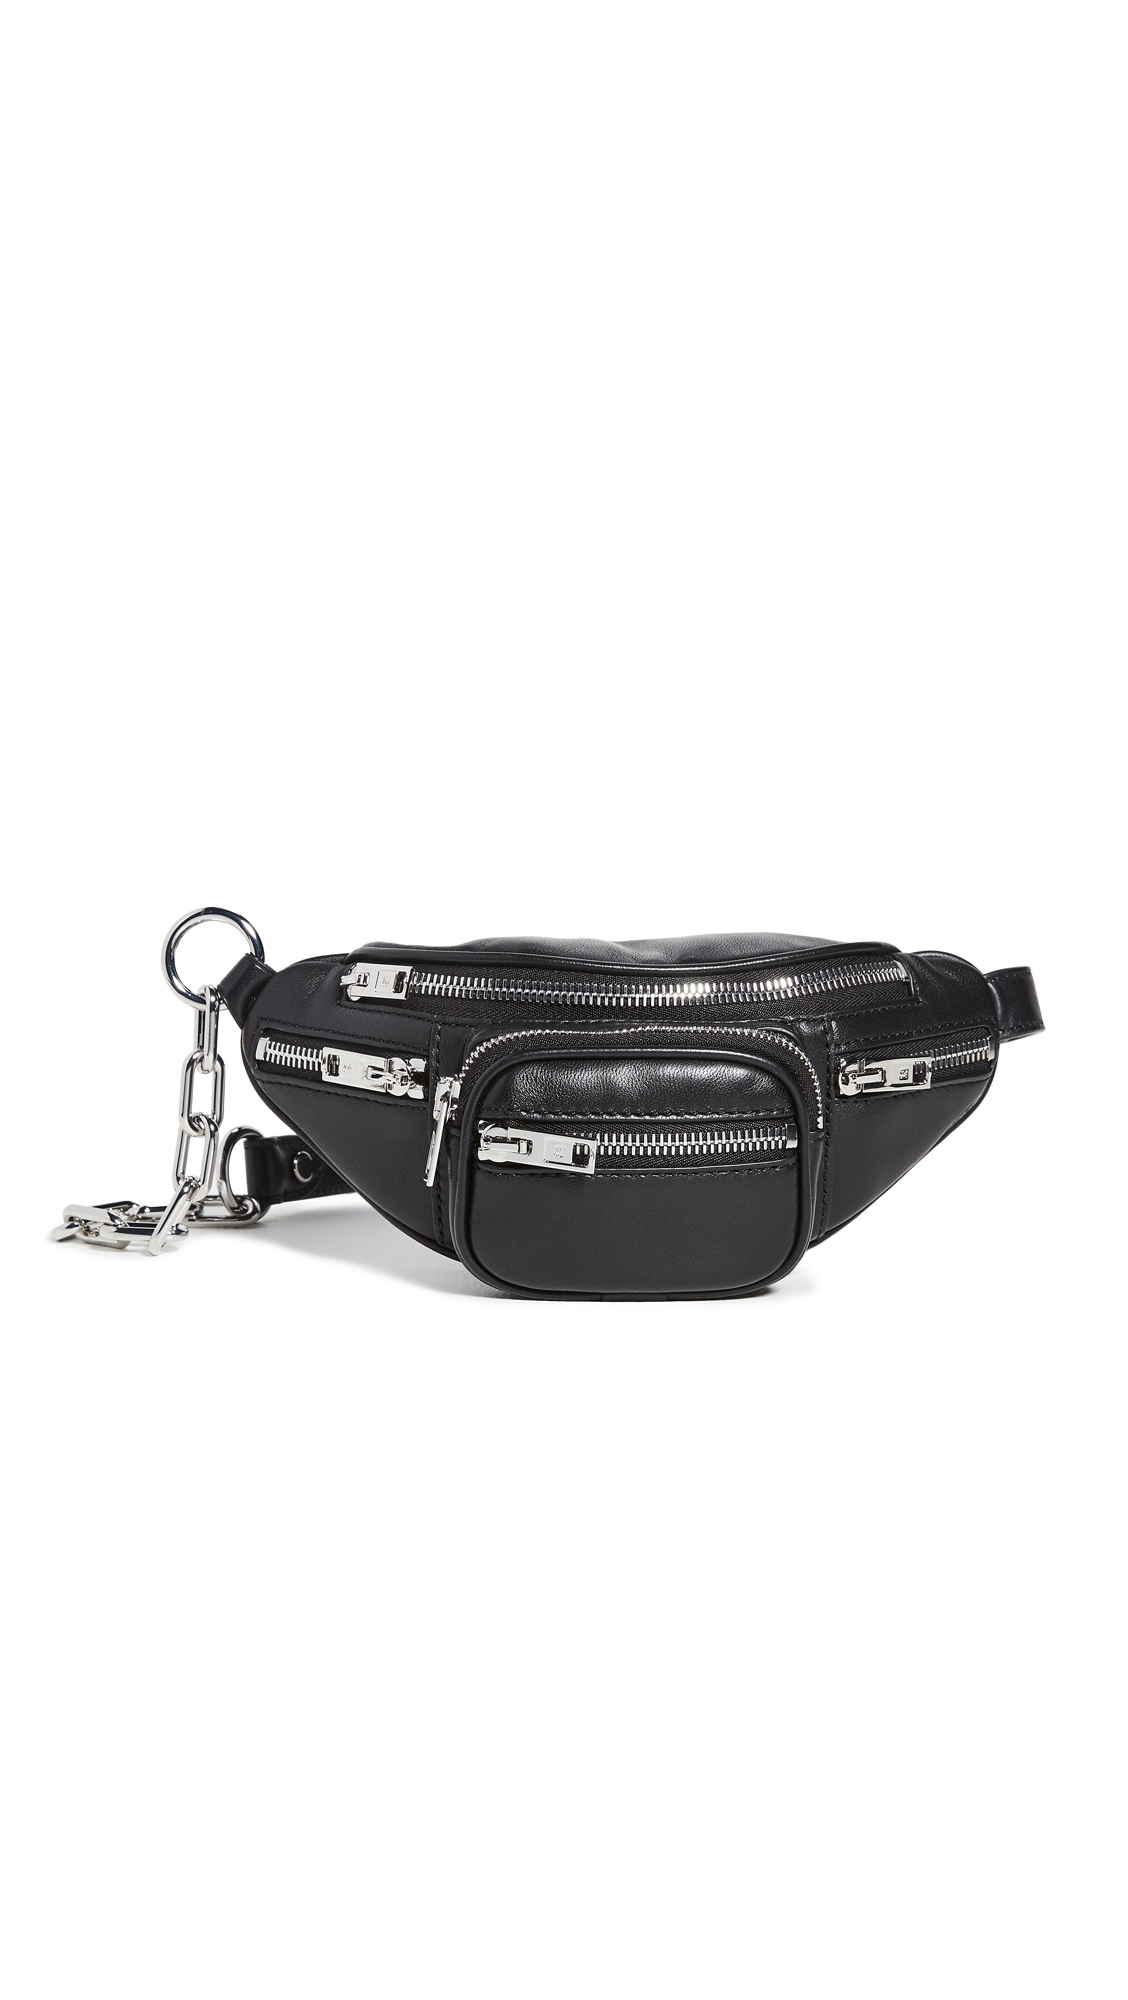 Alexander Wang Attica Mini Convertible Fanny Pack